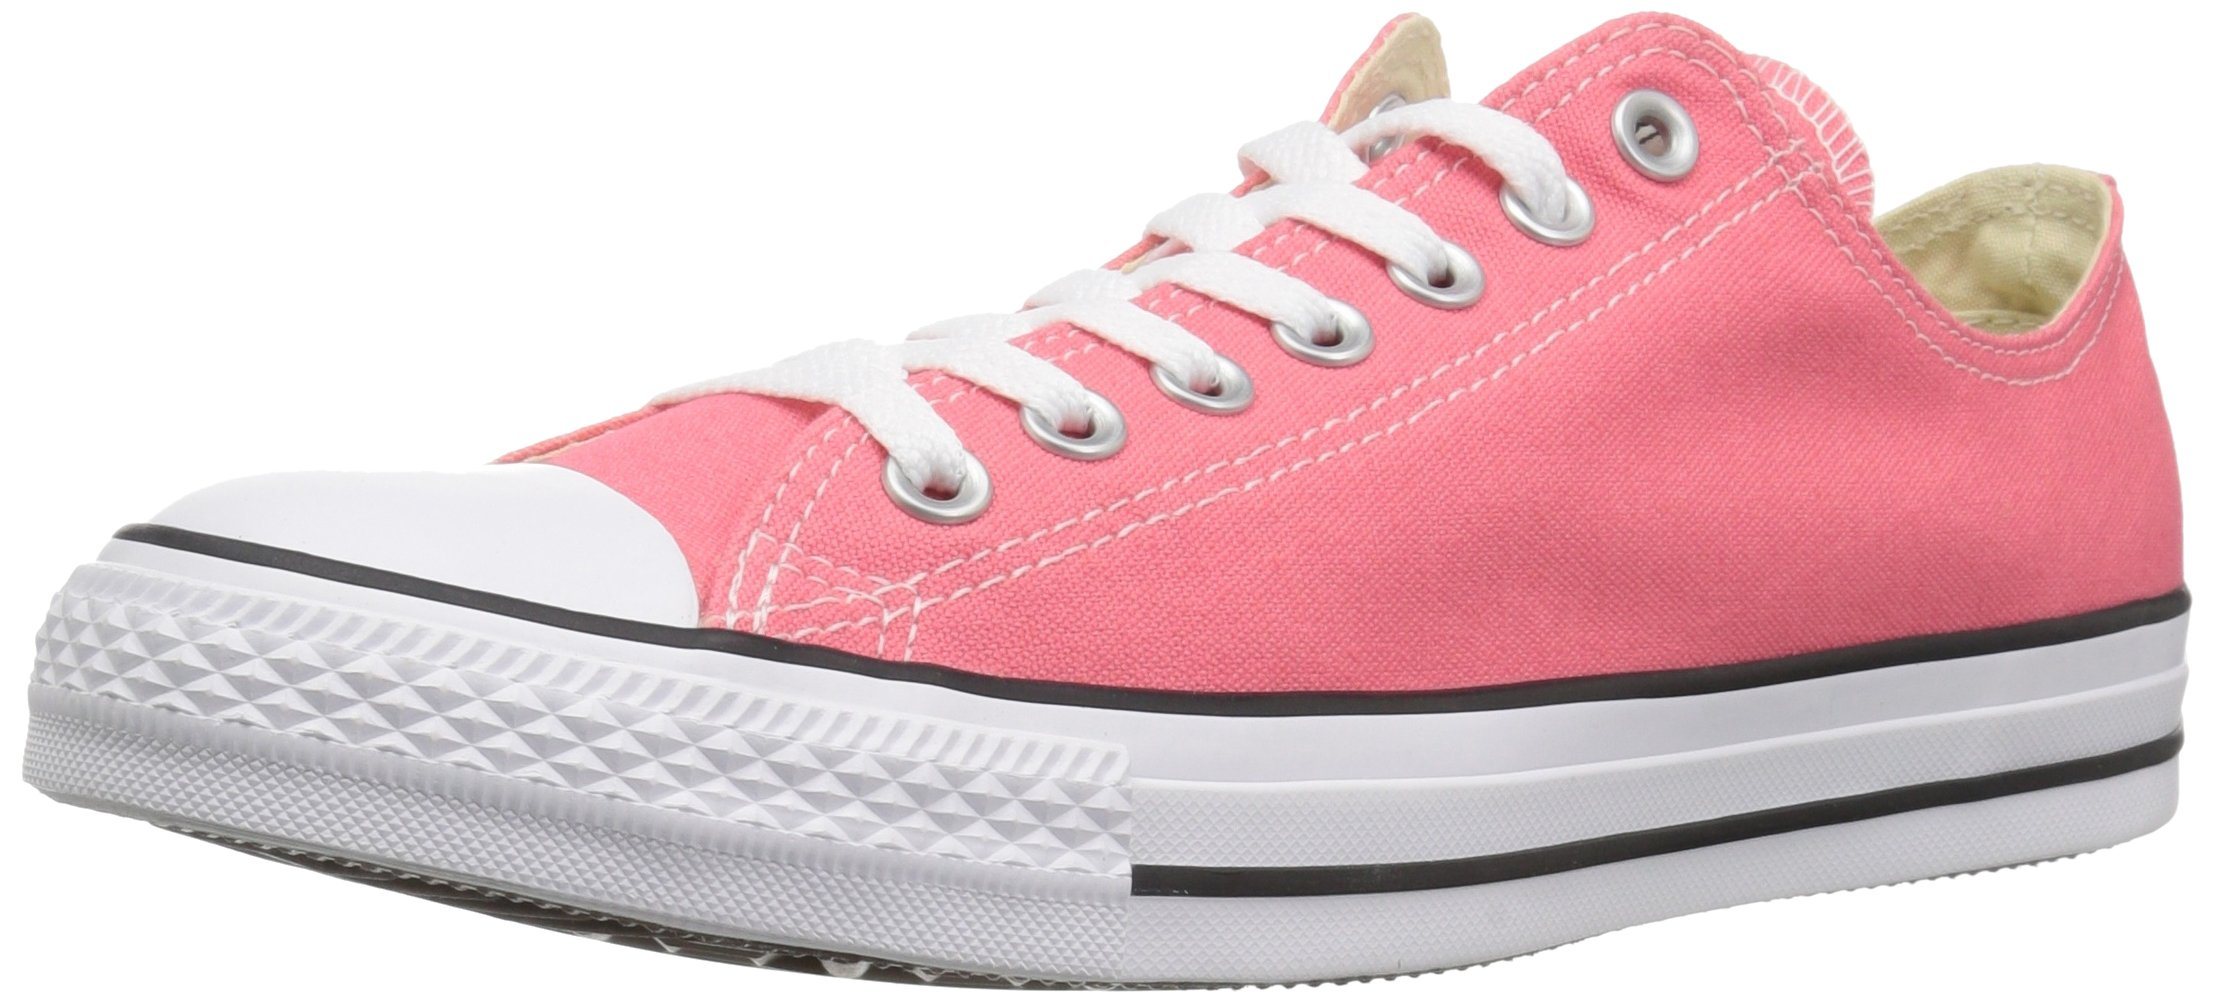 Converse Chuck Taylor All Star 2018 Seasonal Low Top Sneaker, Punch Coral, 8 M US